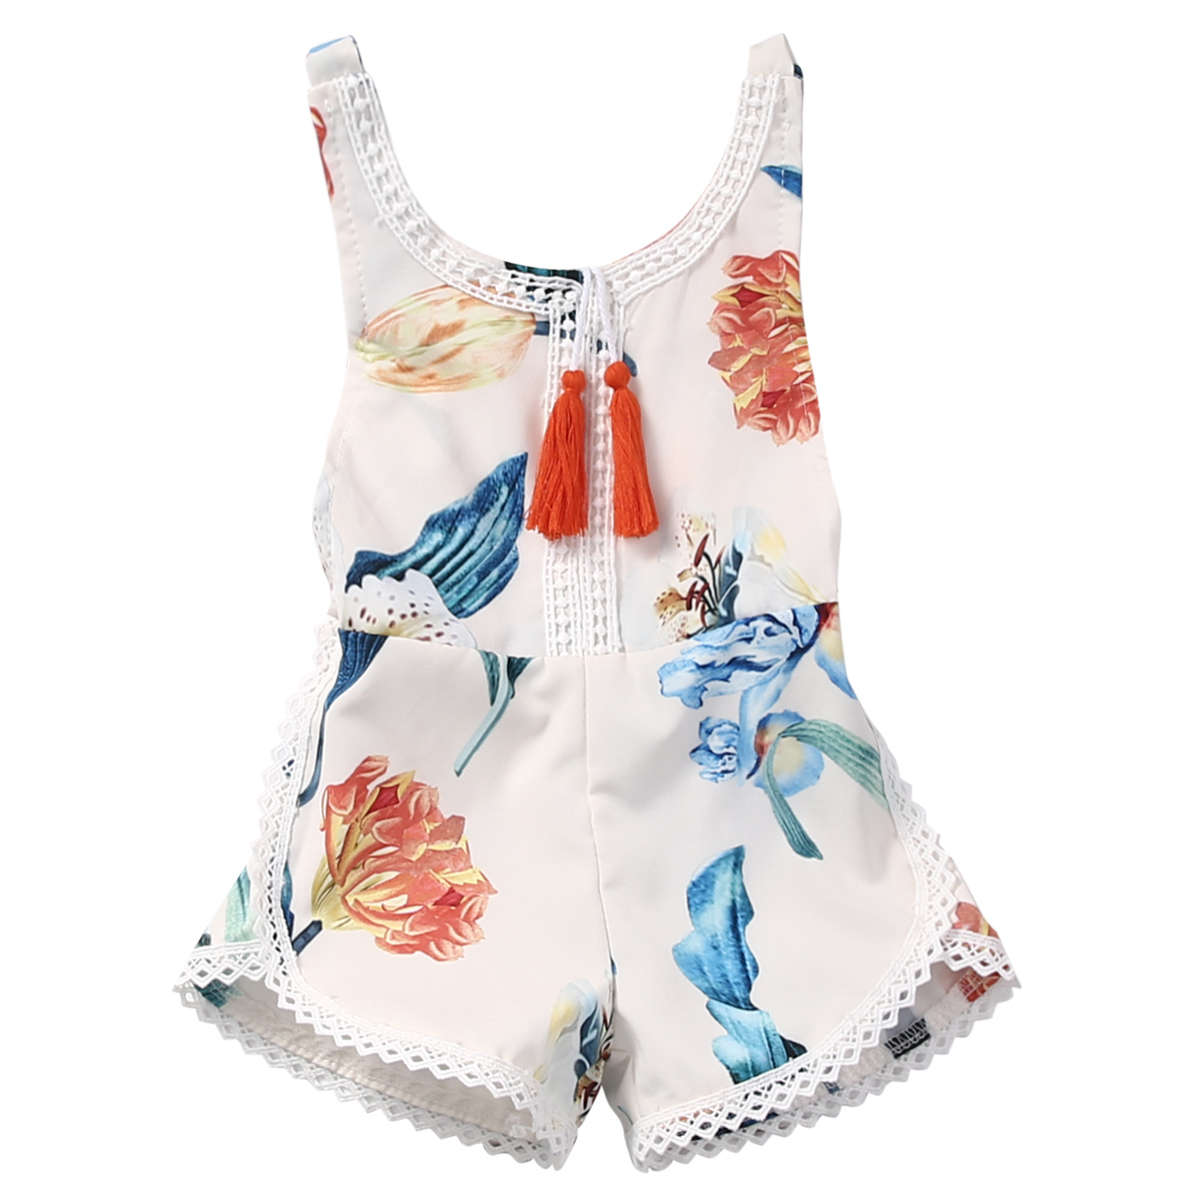 US Stock Baby Girls Clothes Sleeveless Lace Tops+Jeans Shorts Outfit Set Sunsuit